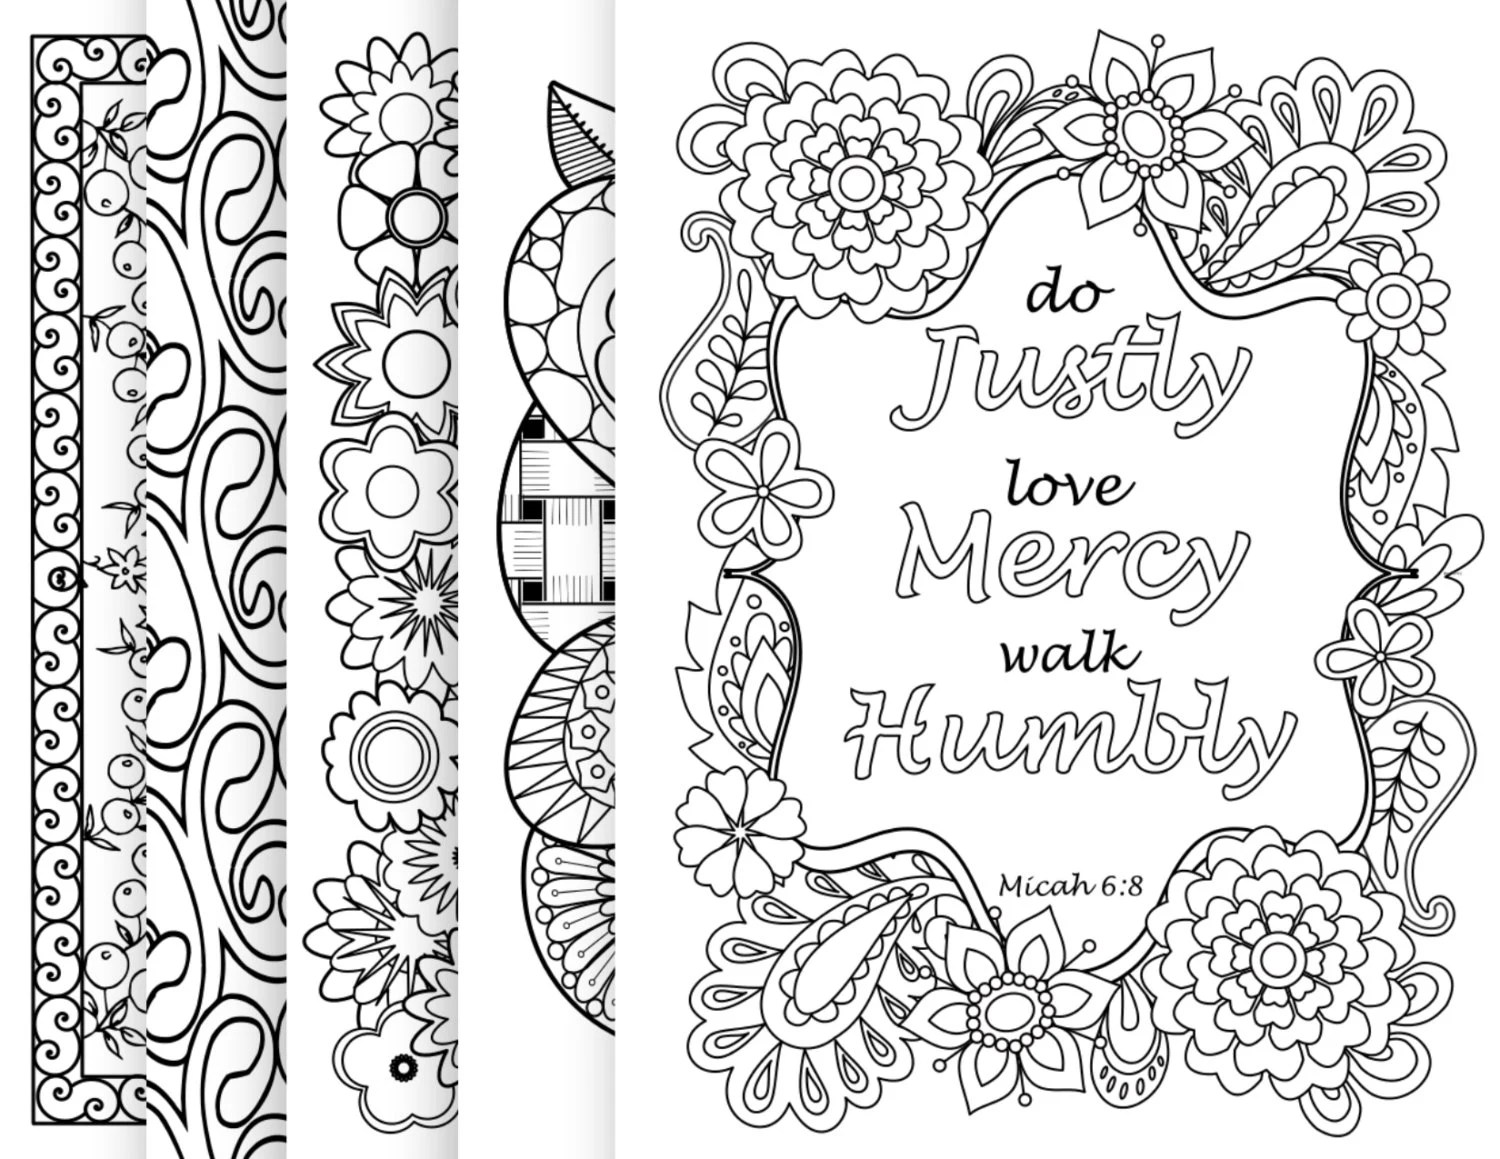 BIBLE COLORING SHEETS Pack 2 Christian by BibleVerseColoring